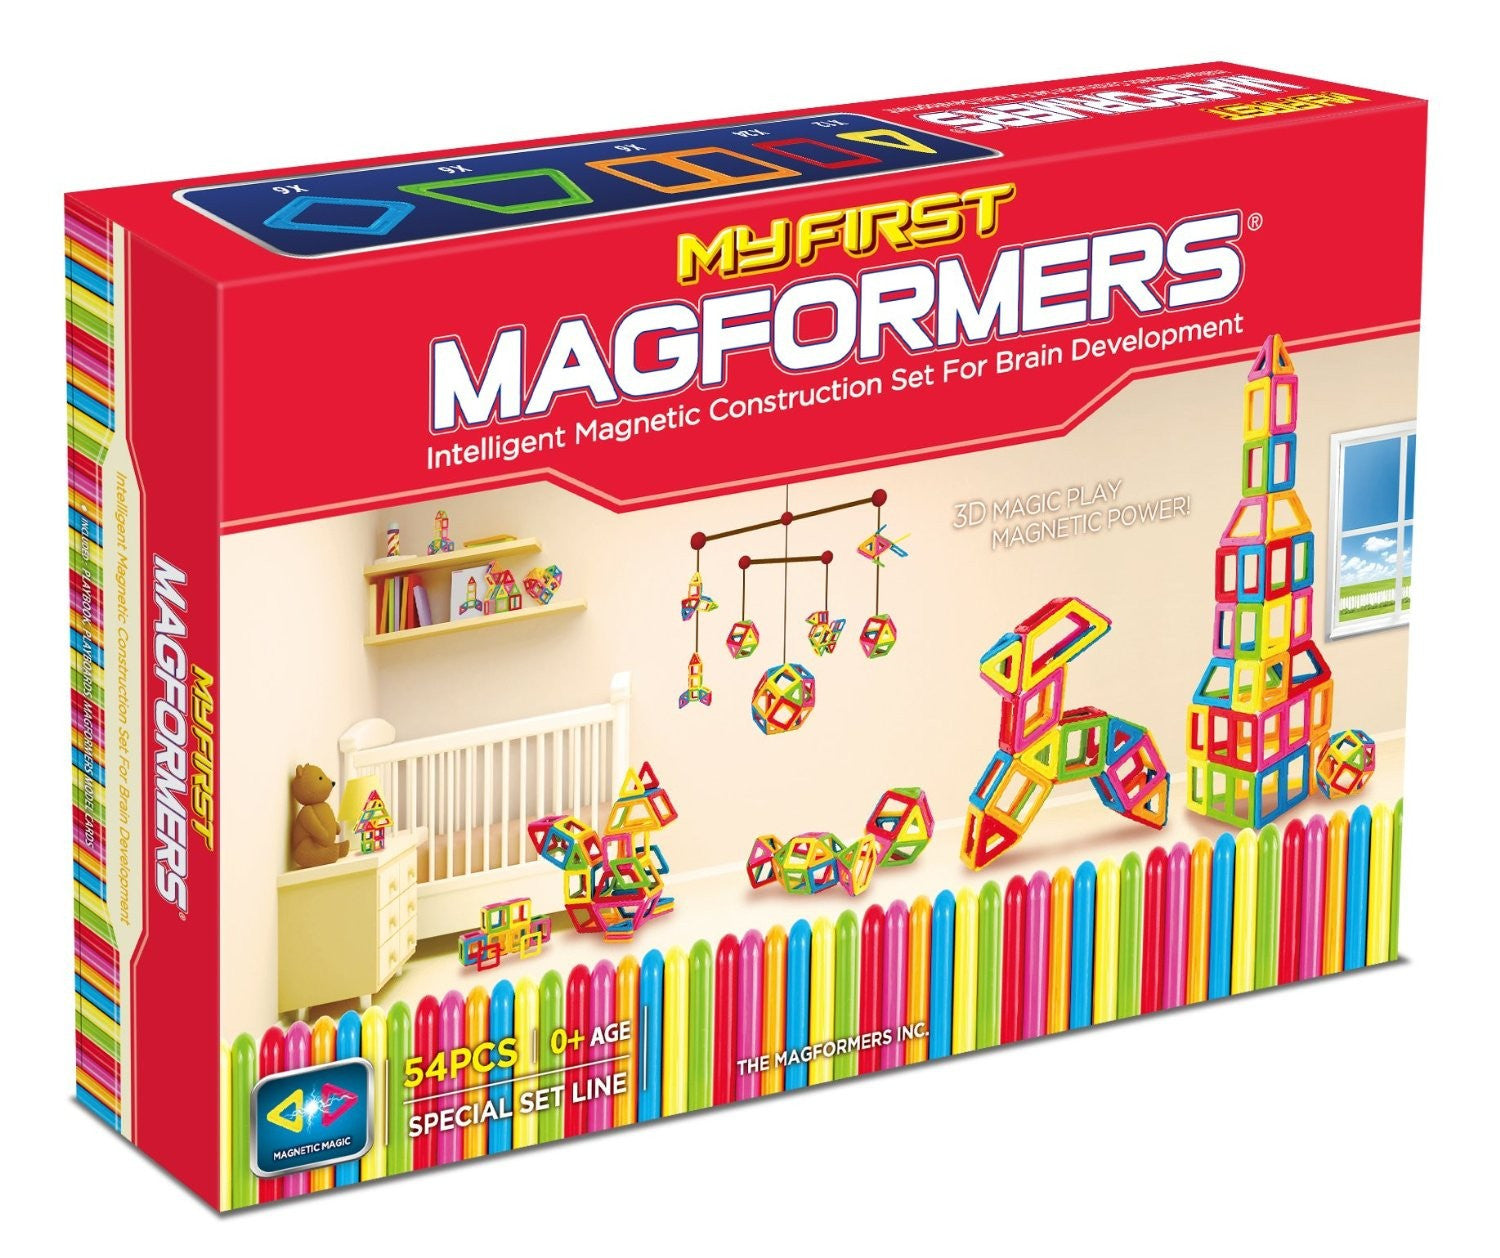 MAGFORMERS My First Magformers 54 pc